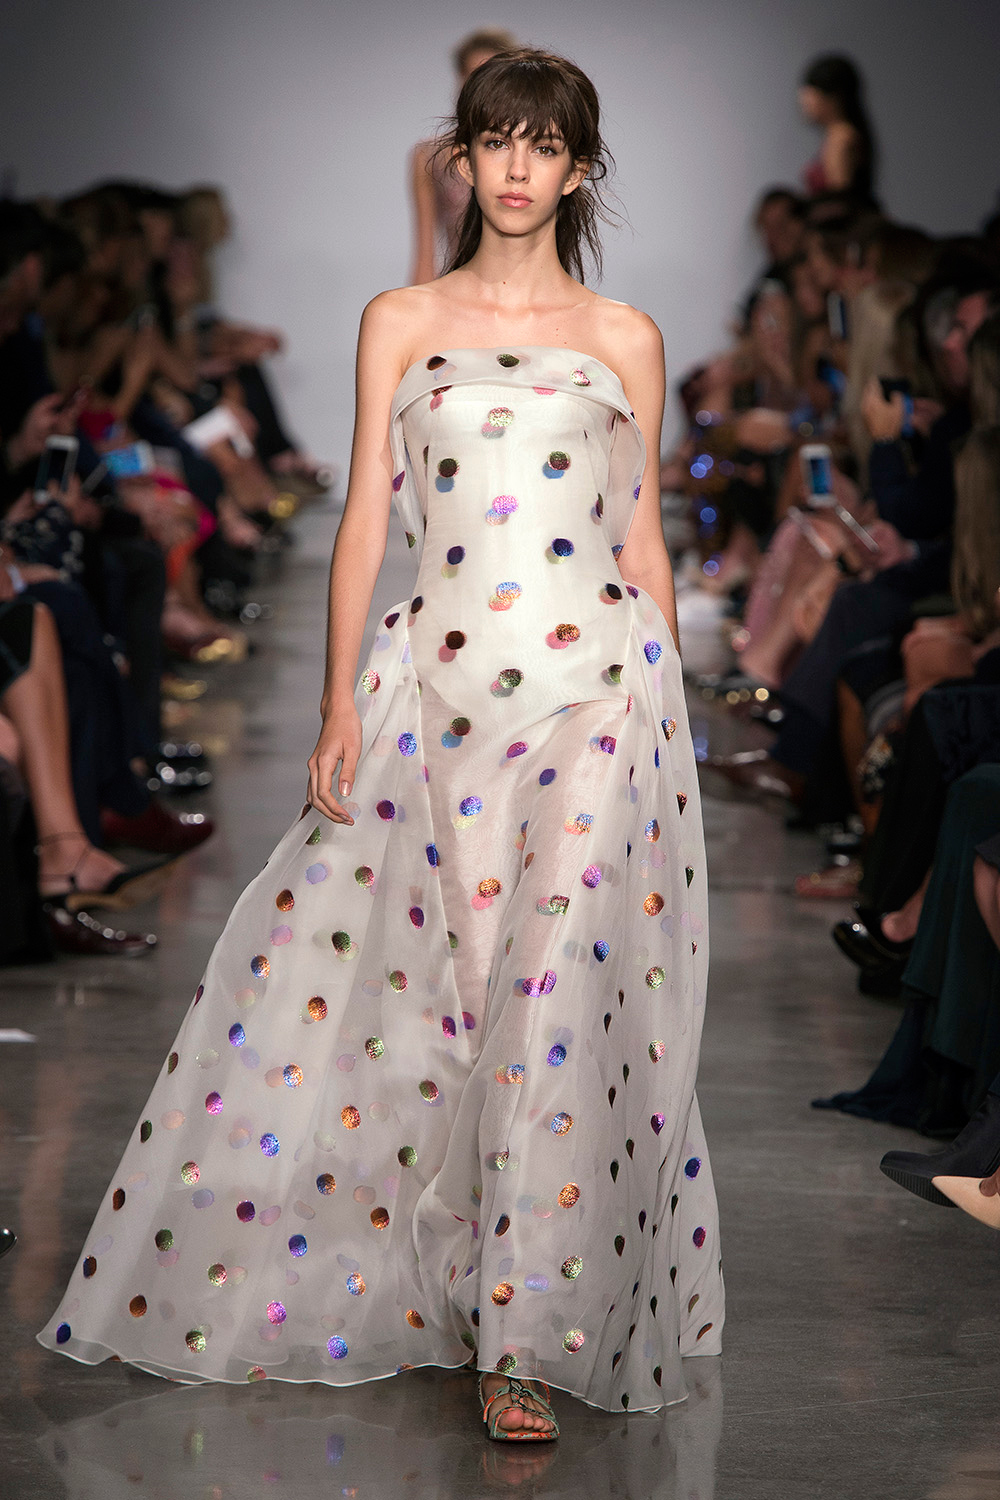 Look 39: Polka Dot Gown